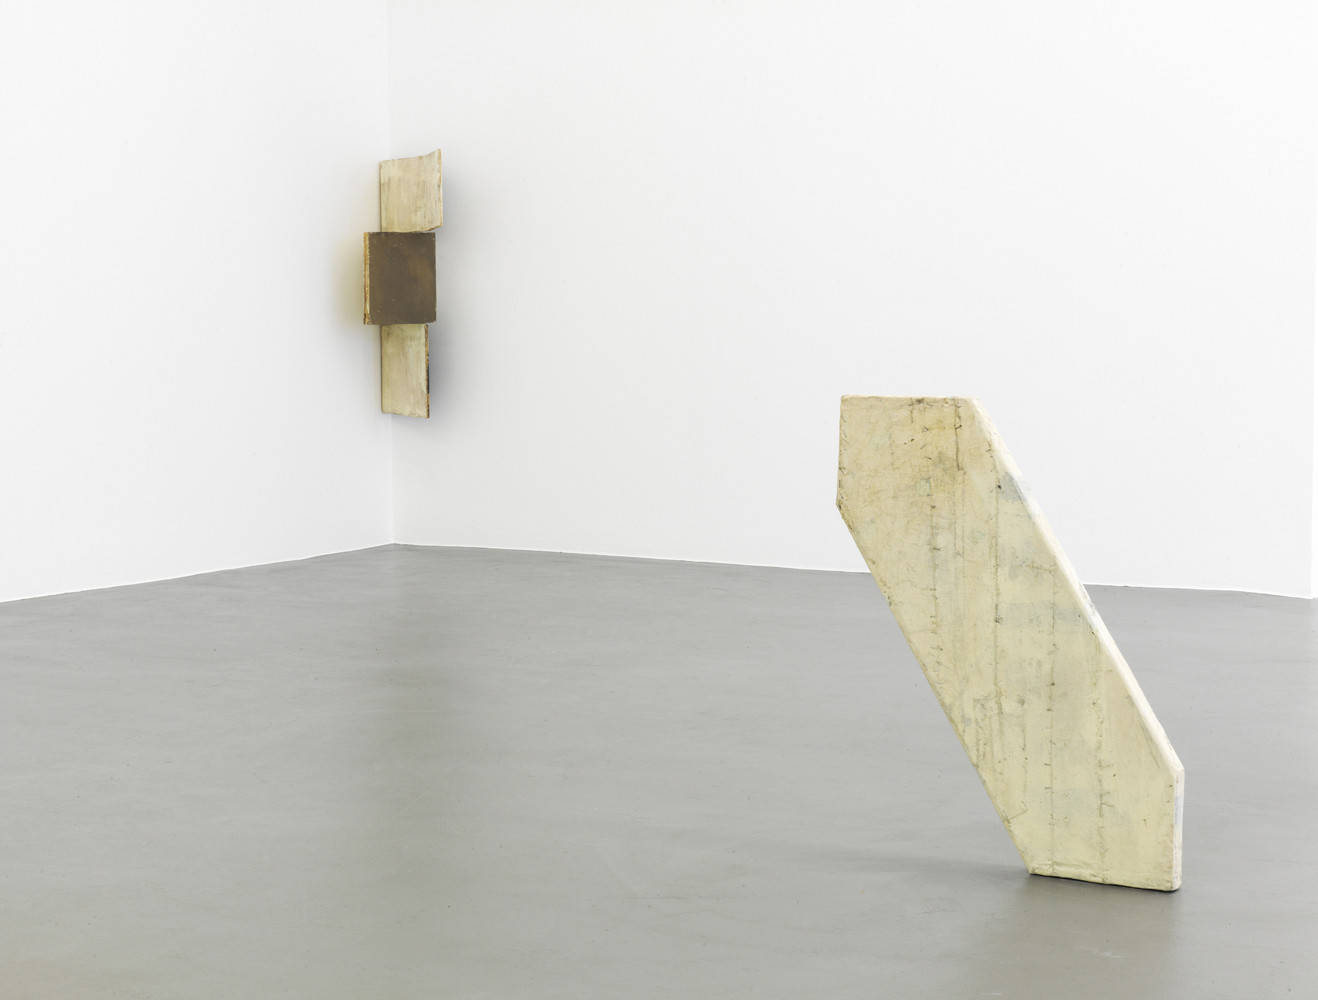 Lawrence Carroll, 'Back to the Cave', Installation view, Buchmann Galerie, 2013